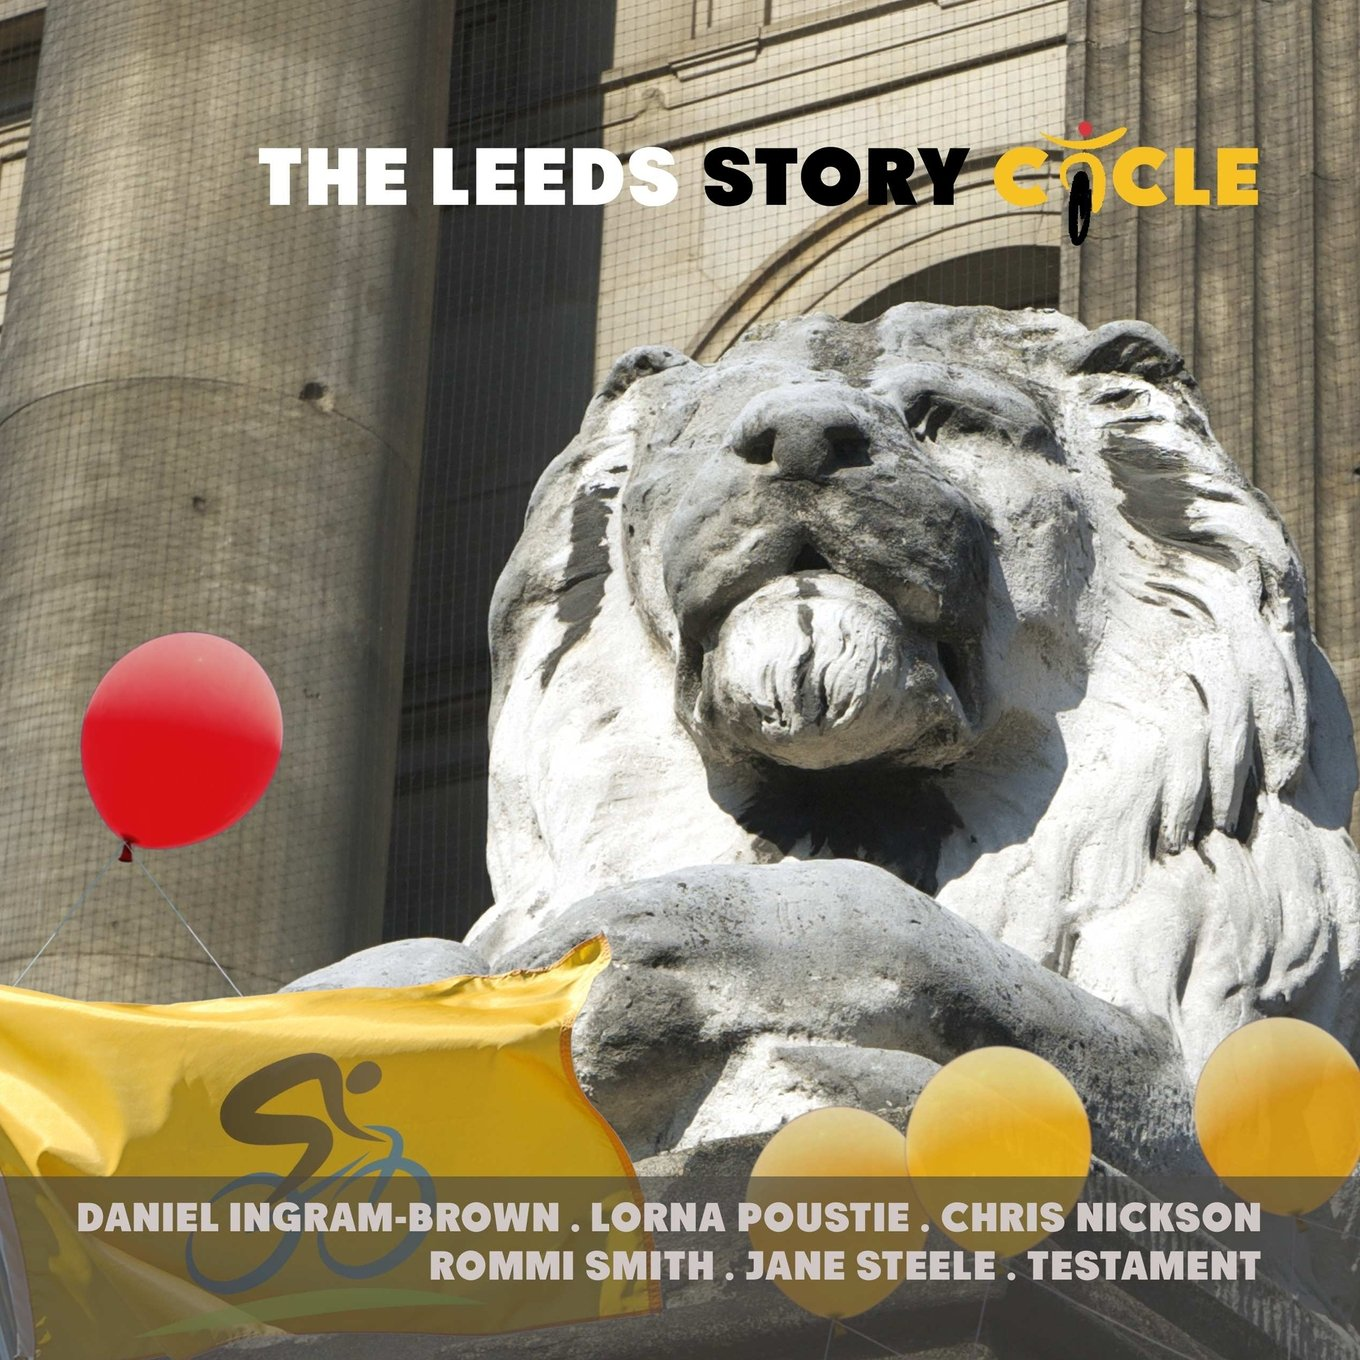 The Leeds Story Cycle